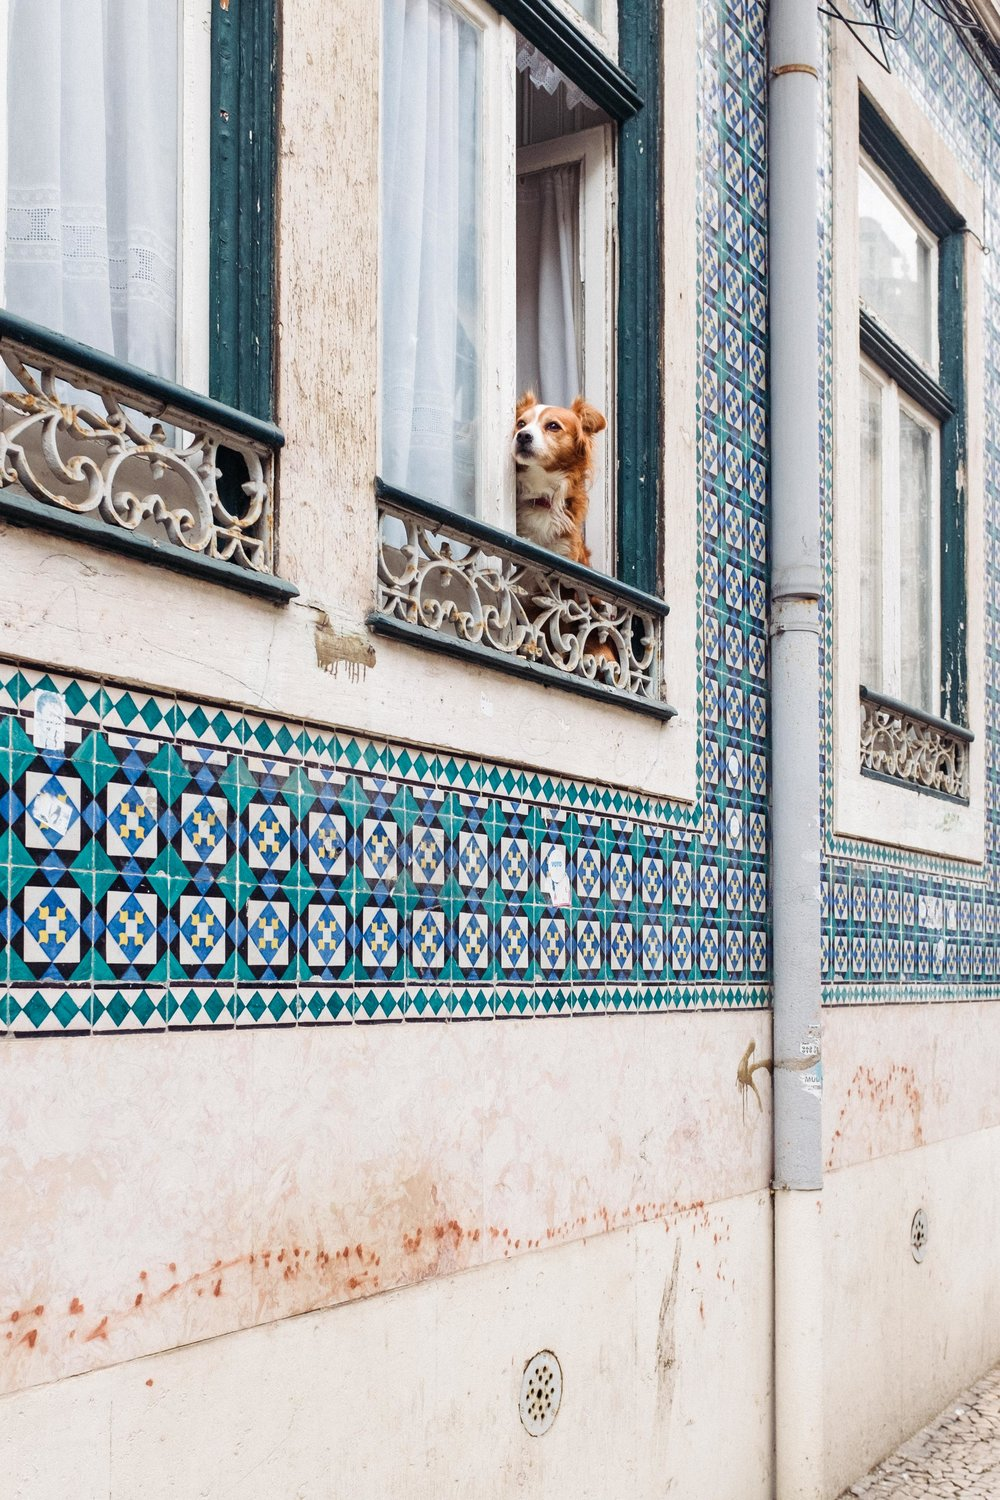 lisbon-portugal-azulejos-dog-in-window